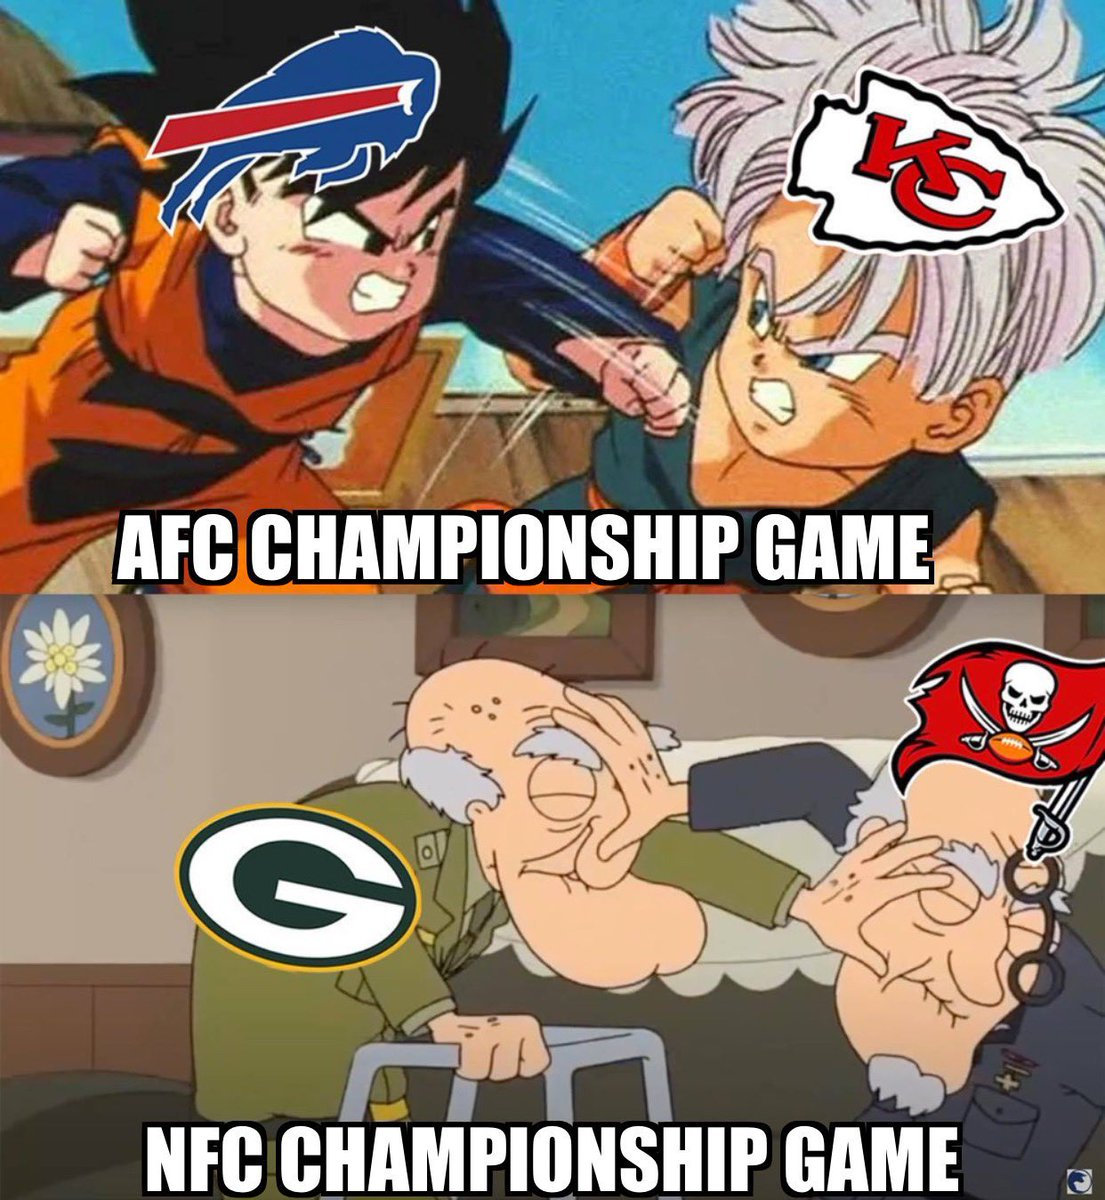 CHAMPIONSHIP SUNDAY! #NFLPlayoffs #GBvsTB #KCvsBUF #SuperBowl #NFL #Football